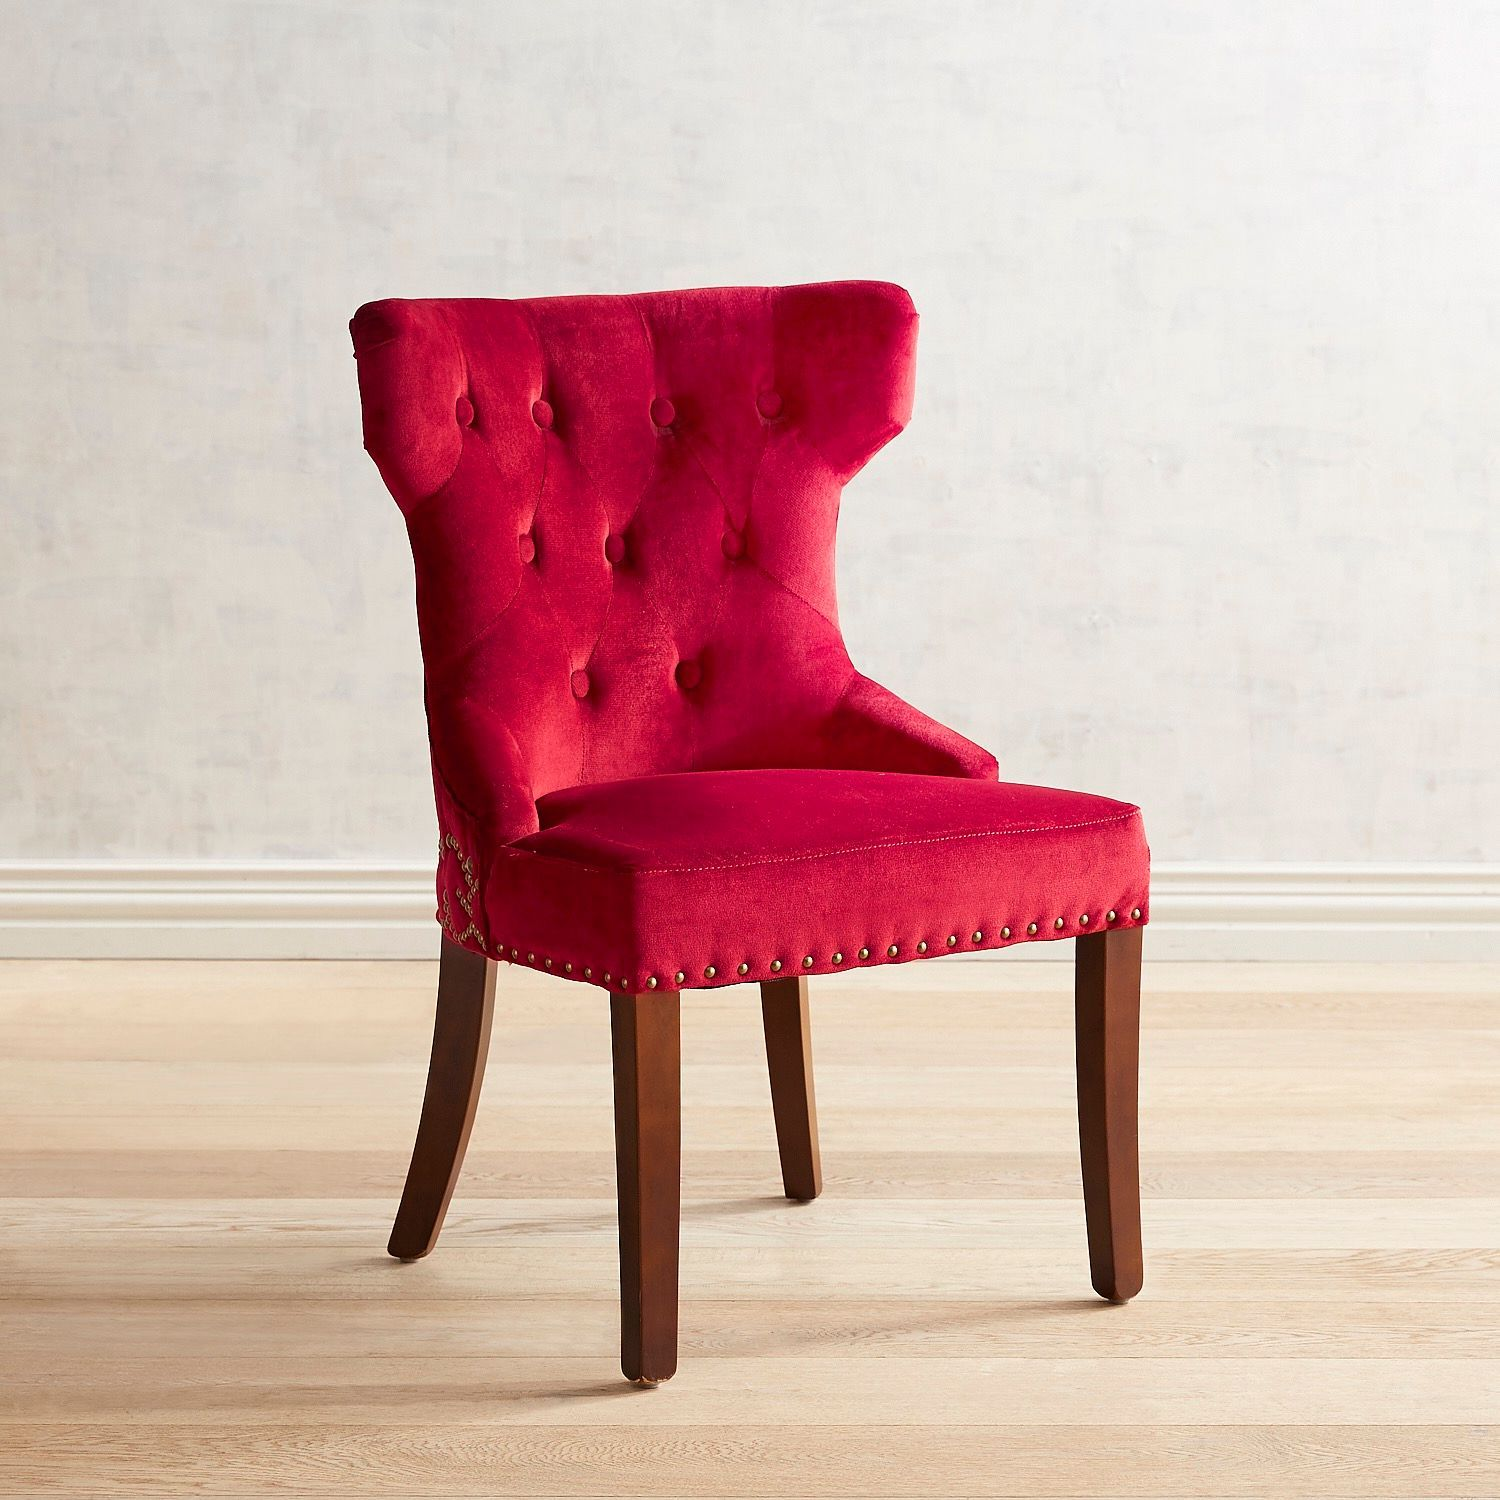 Hourglass velvet red dining chair with espresso wood